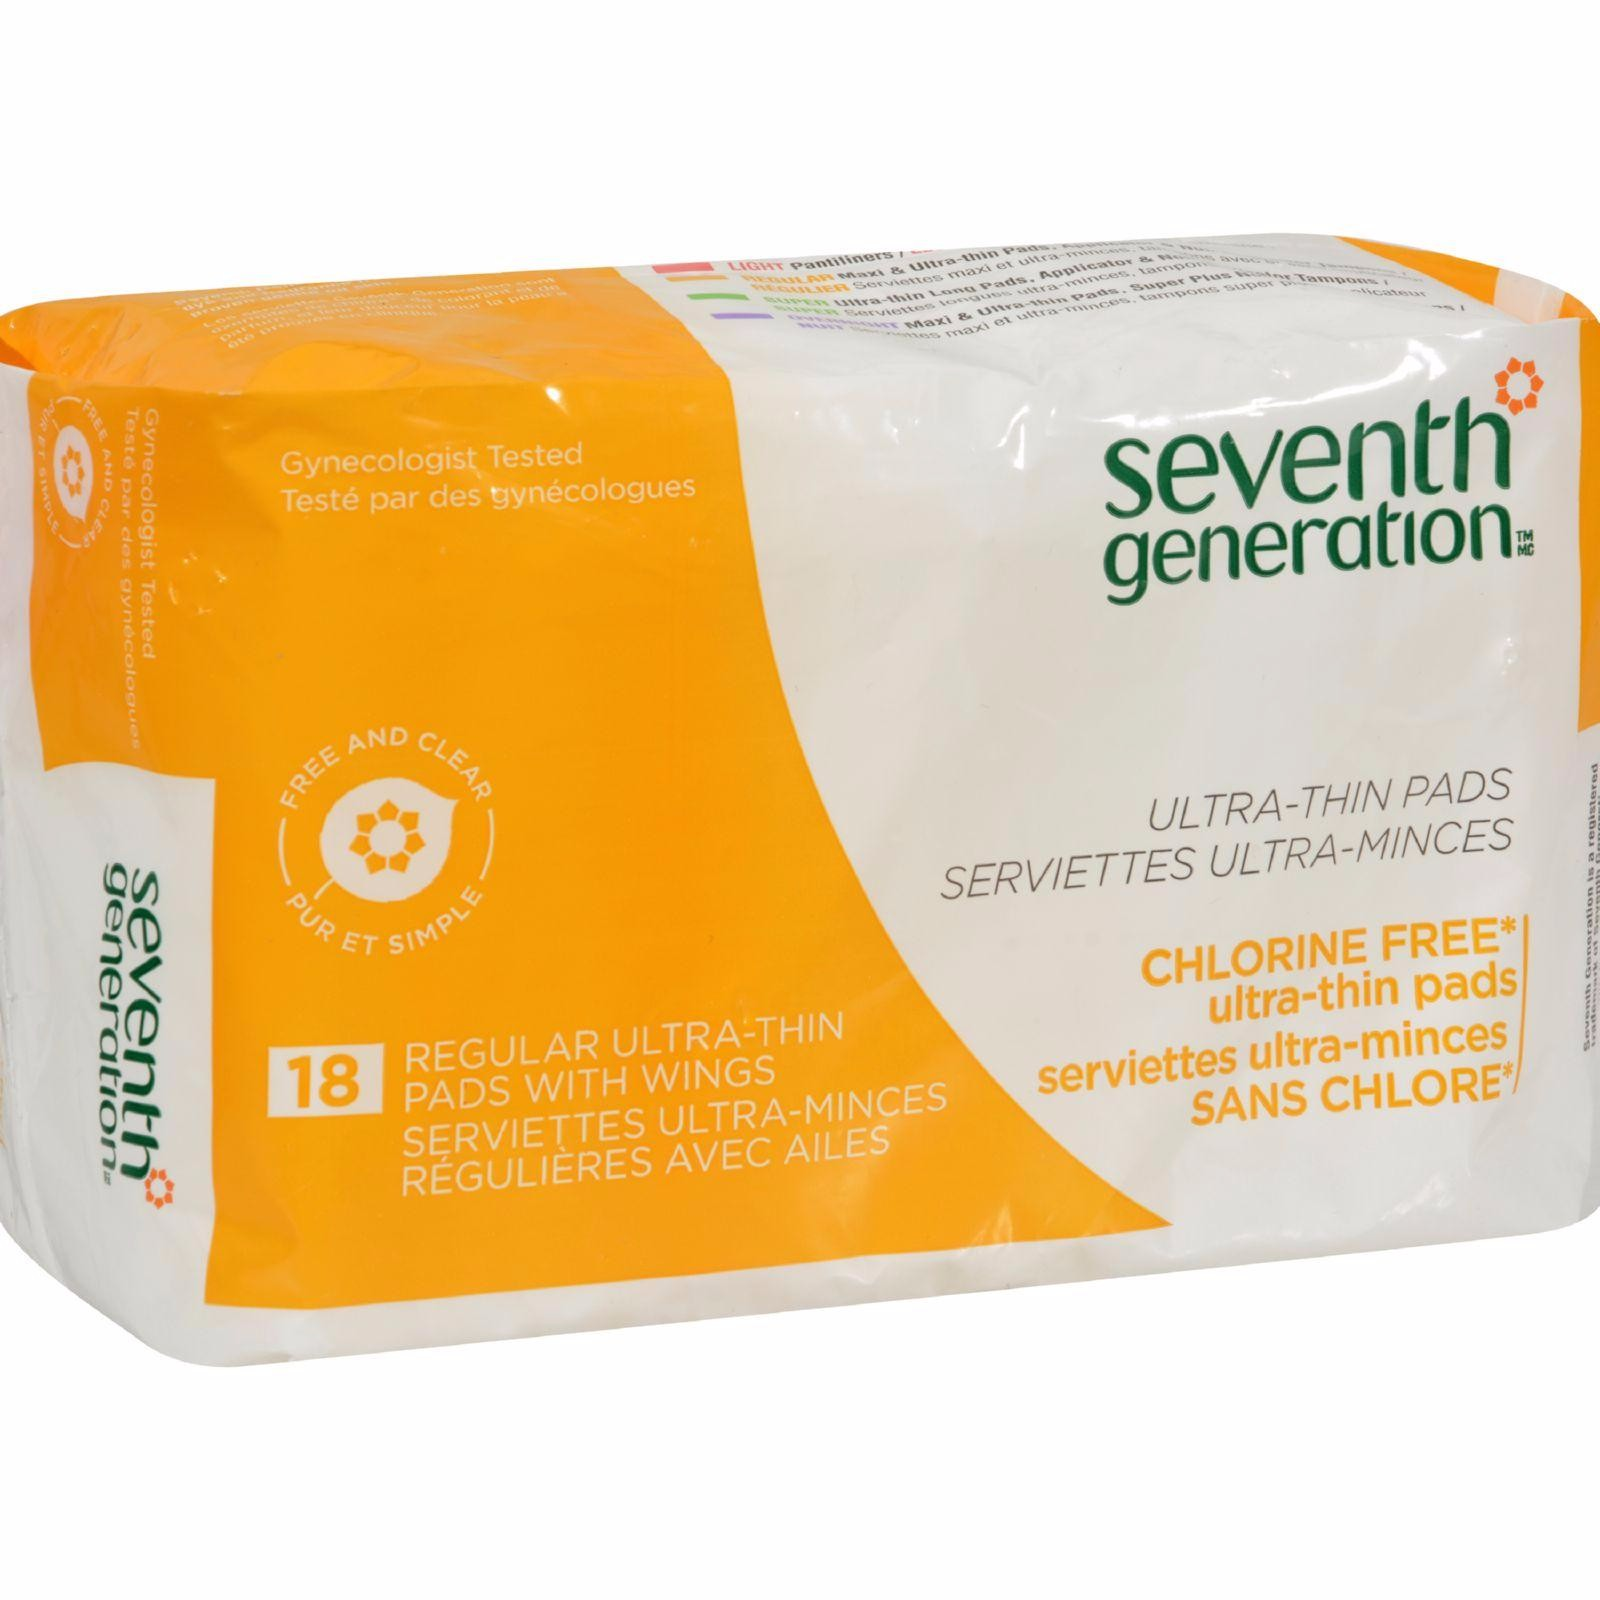 Seventh Generation Chlorine Free Ultra-thin Pads Regular With Wings - 18 Pads - Pack of 12